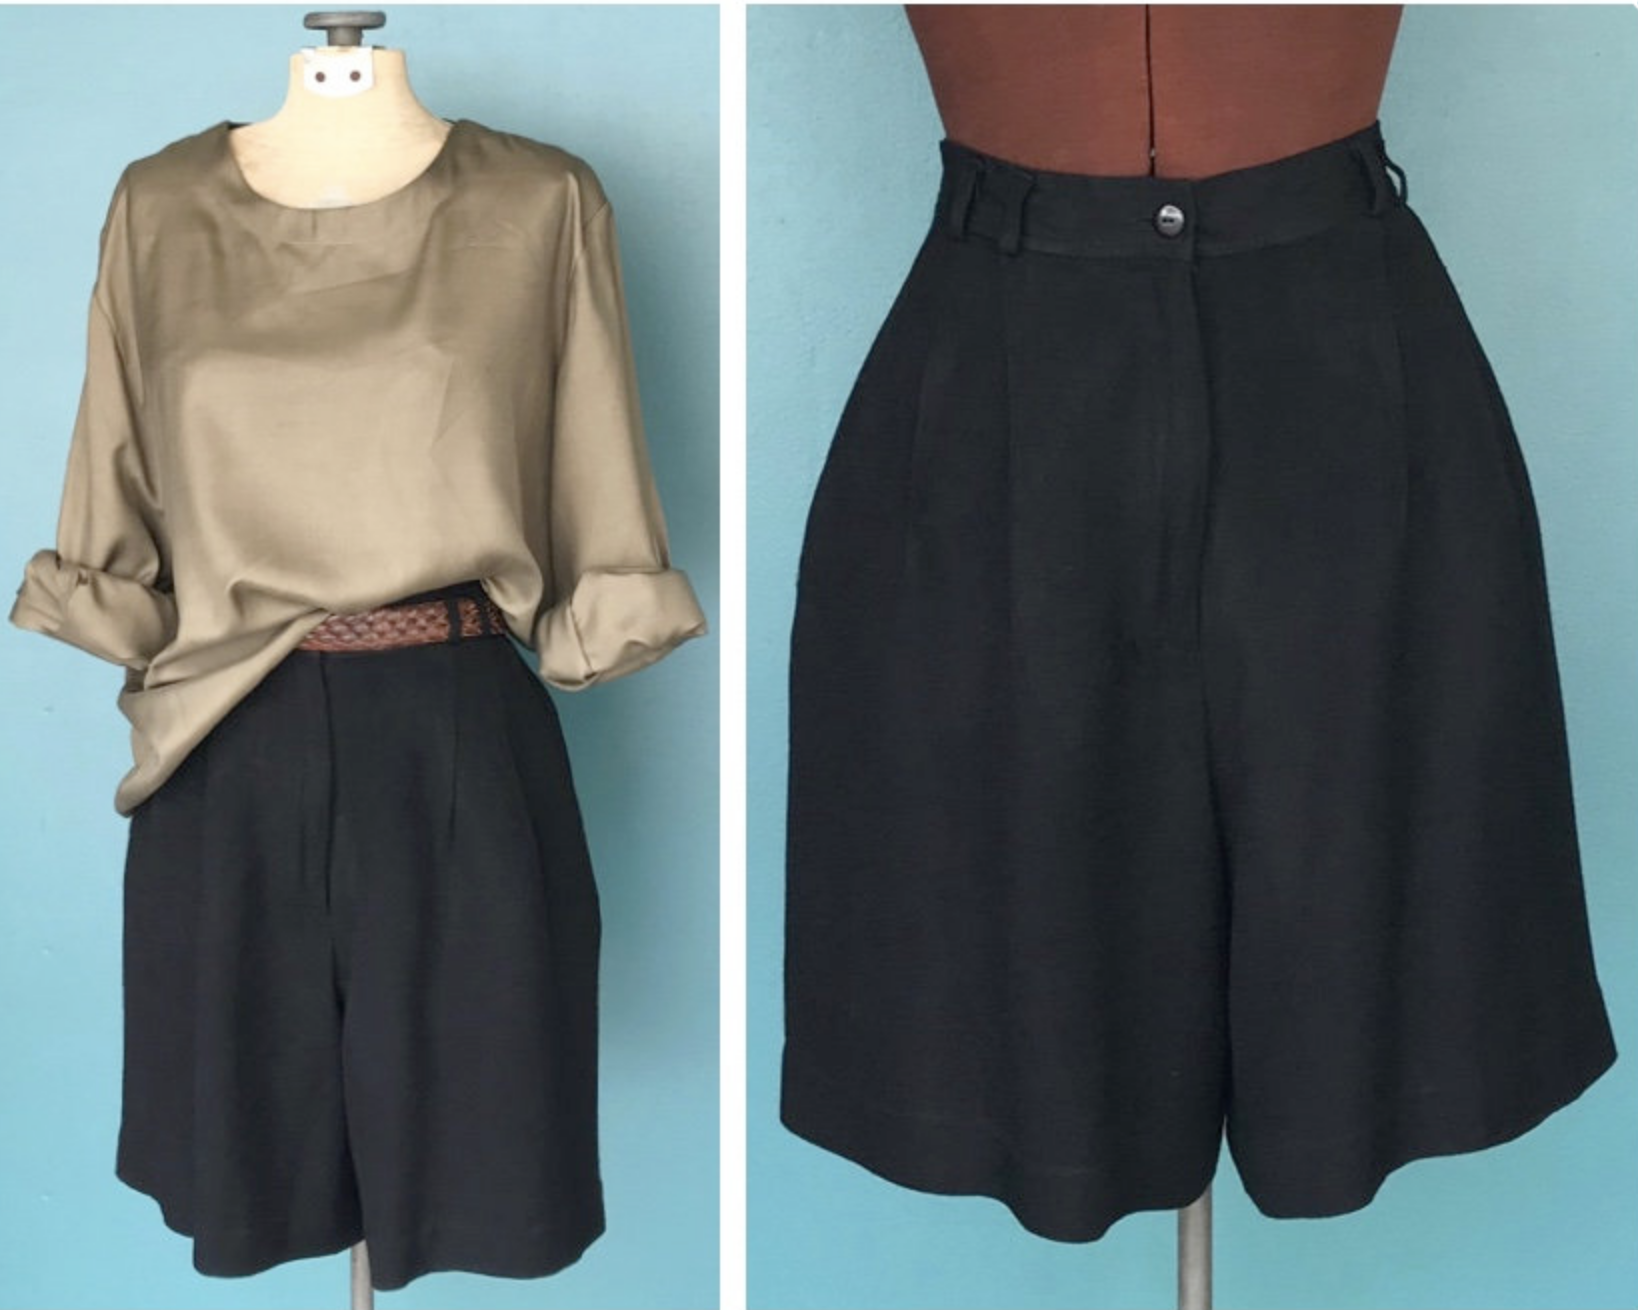 Black Rayon Shorts $41 - These seem more wearable than the other black pair. Reminiscent of the ES florence shorts, very floaty. Minimal double pleats here and a nice wide, blousy leg. Far less utilitarian than either of the above pairs.More classy. Would they wrinkle though?